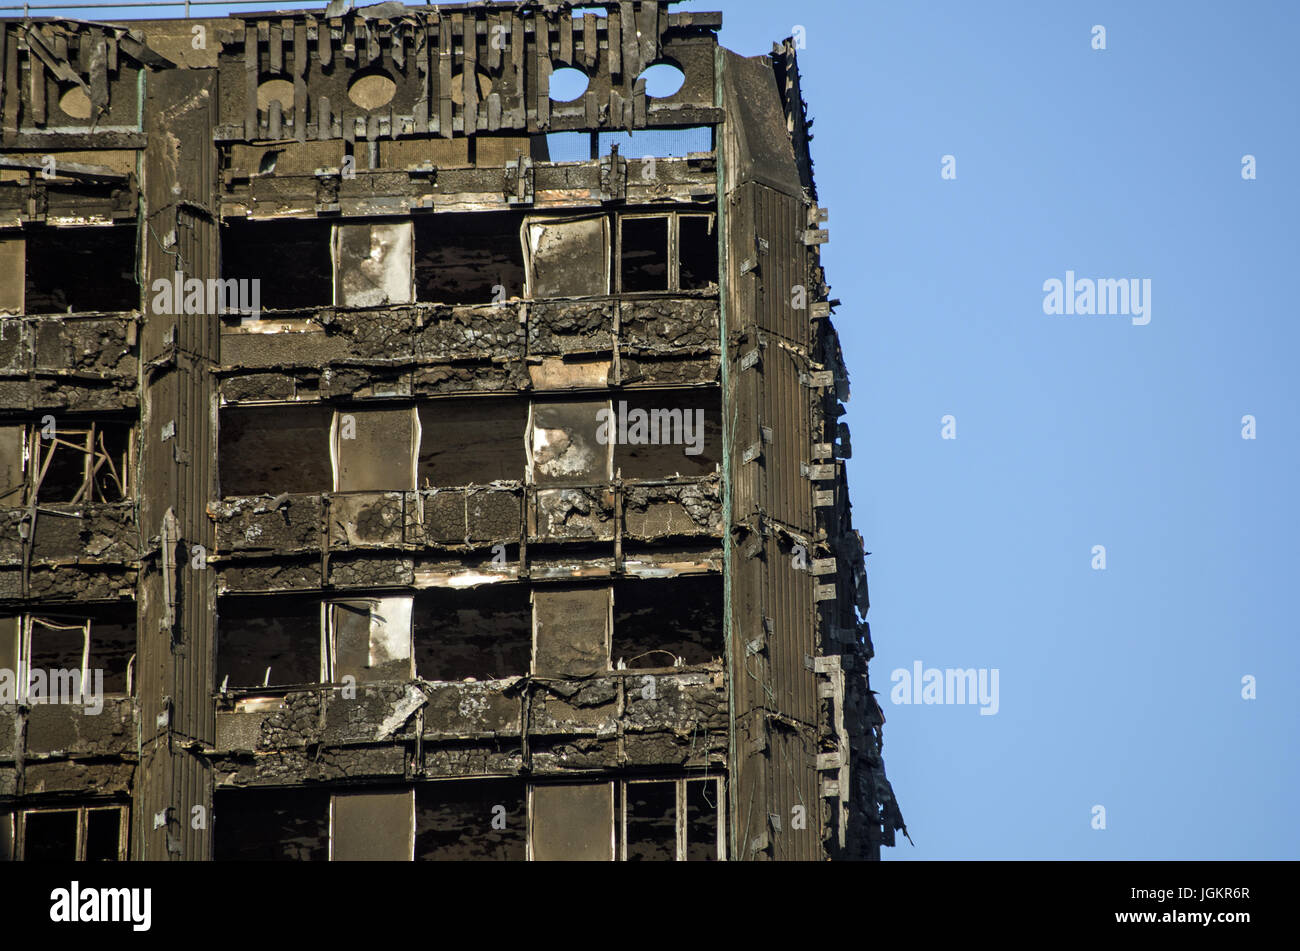 LONDON, UK - JULY 5, 2017: Part of the top floors of the Grenfell Tower block of council flats in which at least - Stock Image